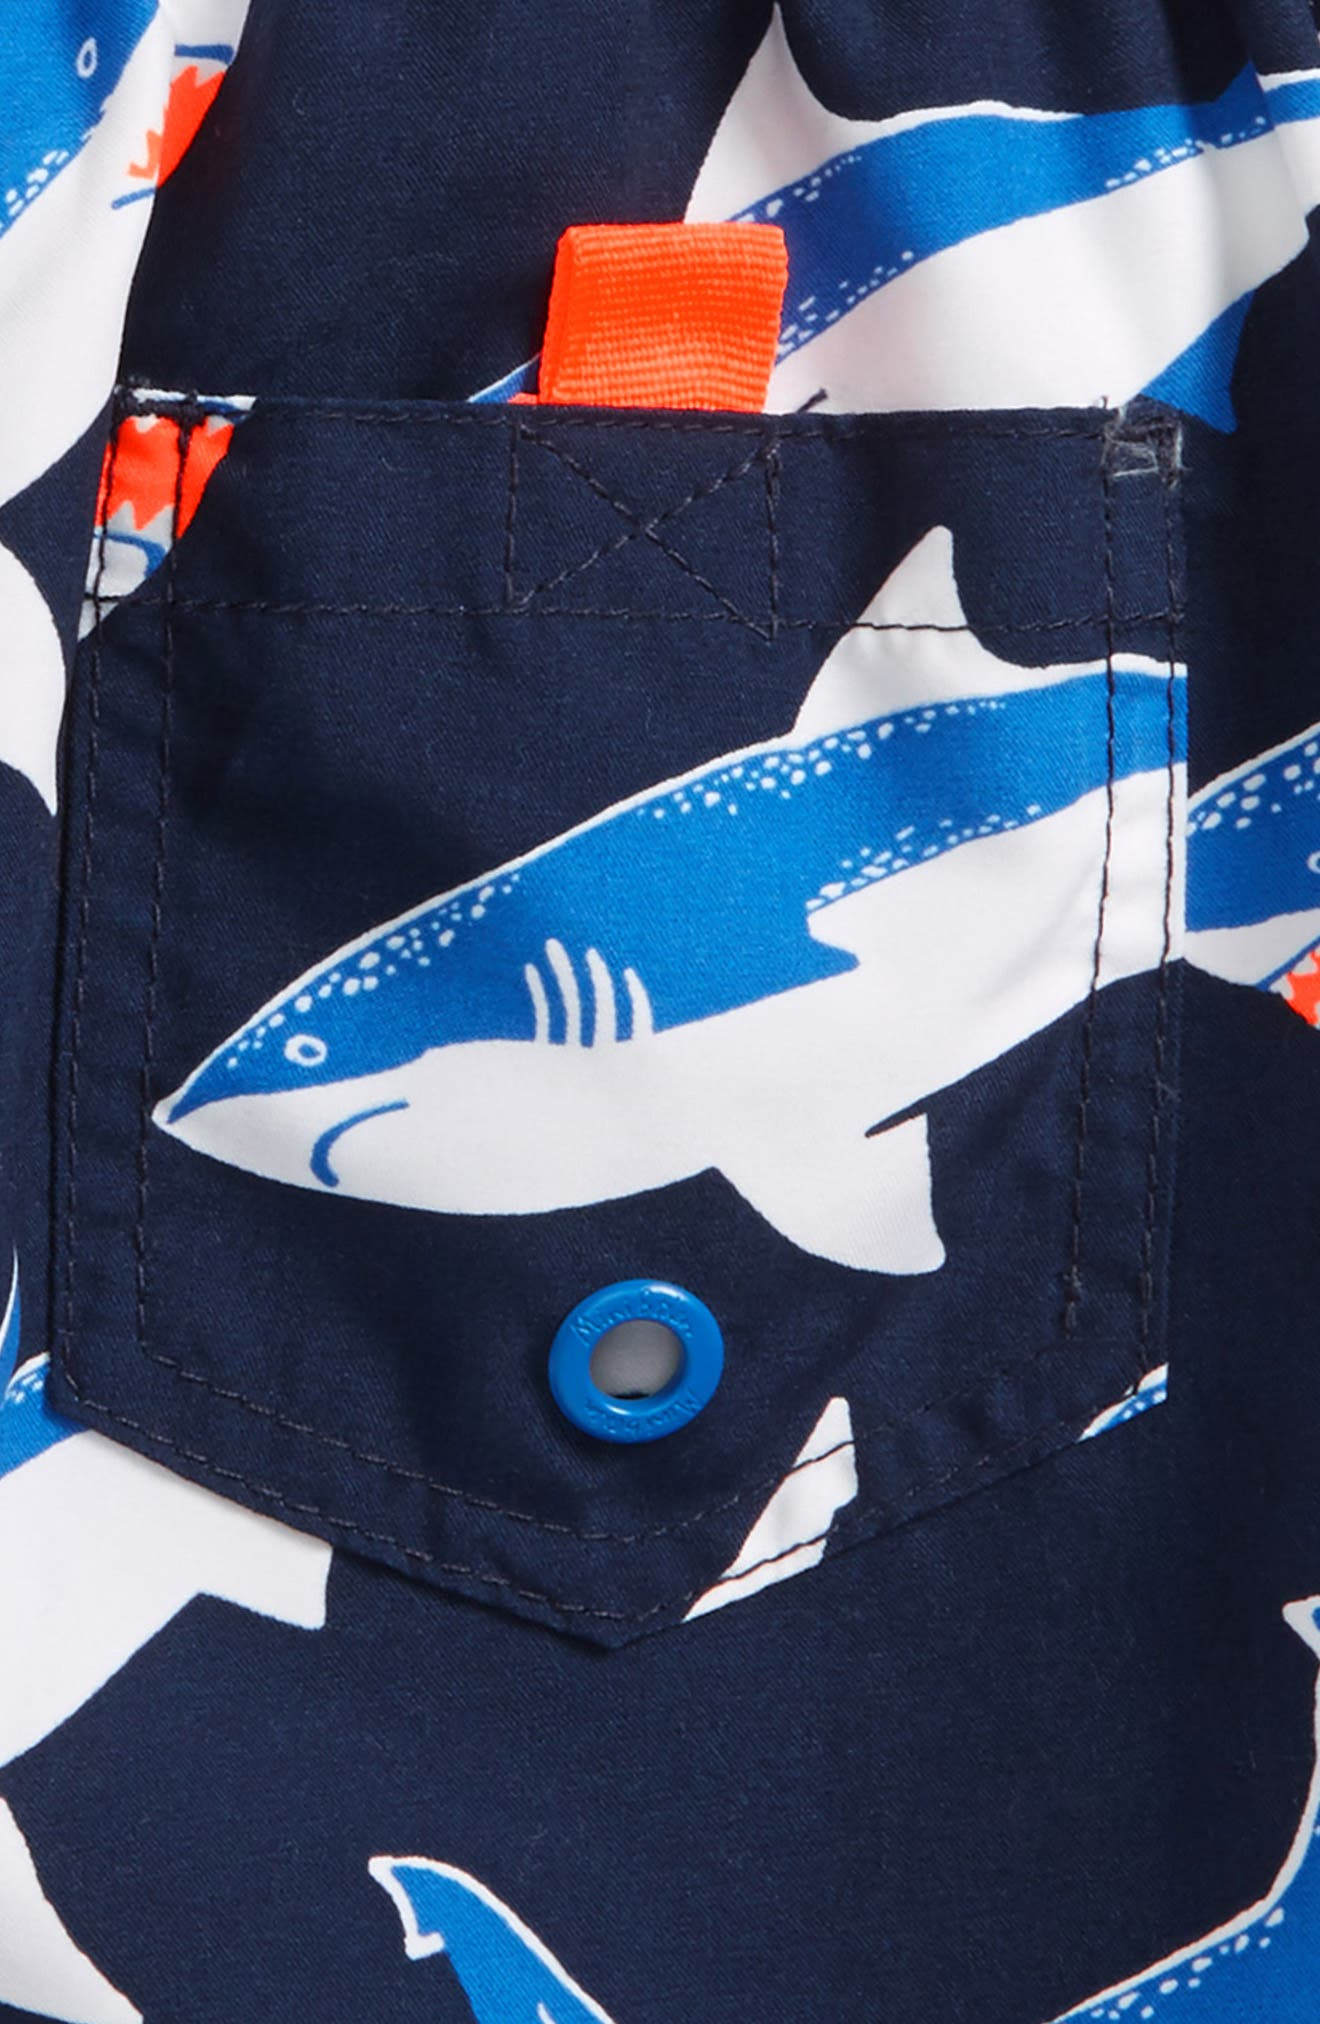 Shark Print Board Shorts,                             Alternate thumbnail 3, color,                             School Navy Sharks